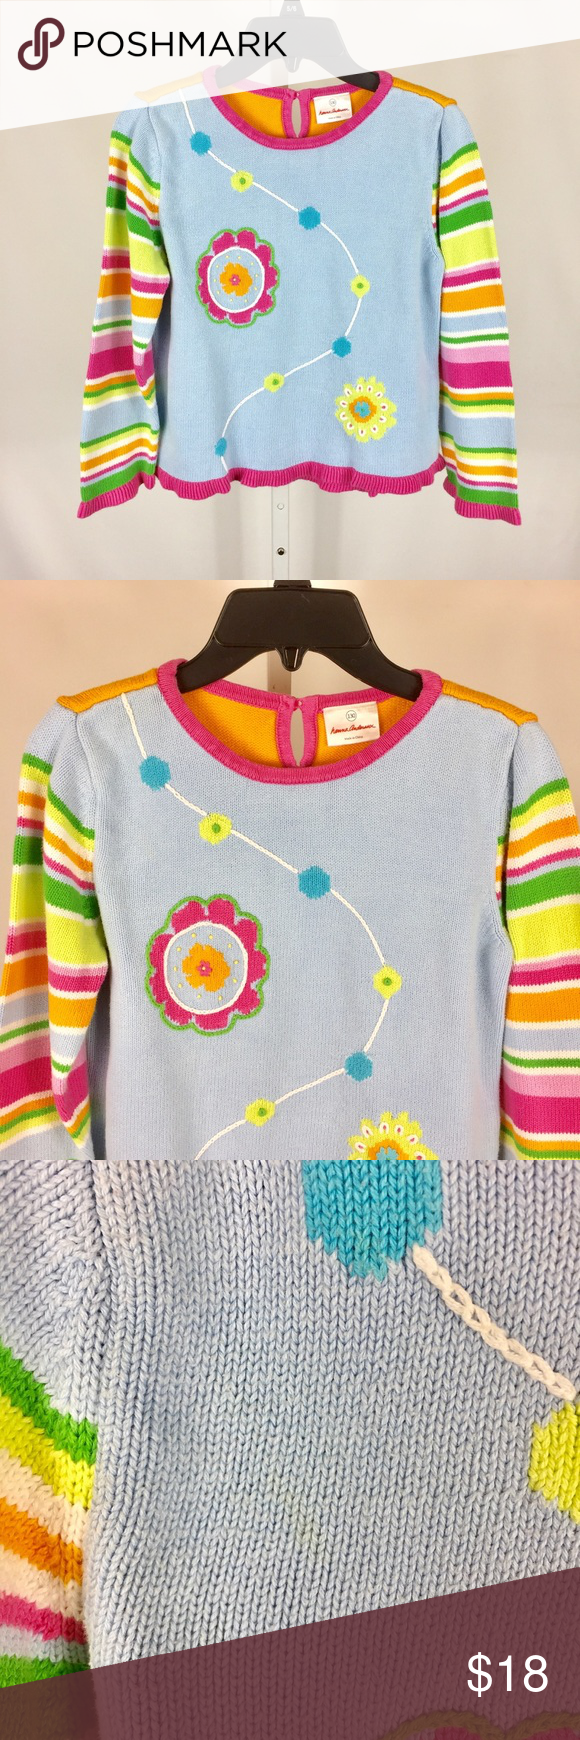 f7b7c24c8419 Hanna Andersson Girls Sweater Size 130 7/8 Mark Hanna Andersson Girls  Sweater Size 130 7/8 Blue Orange Floral Striped Slvs Mark • Bust  measurement is 16